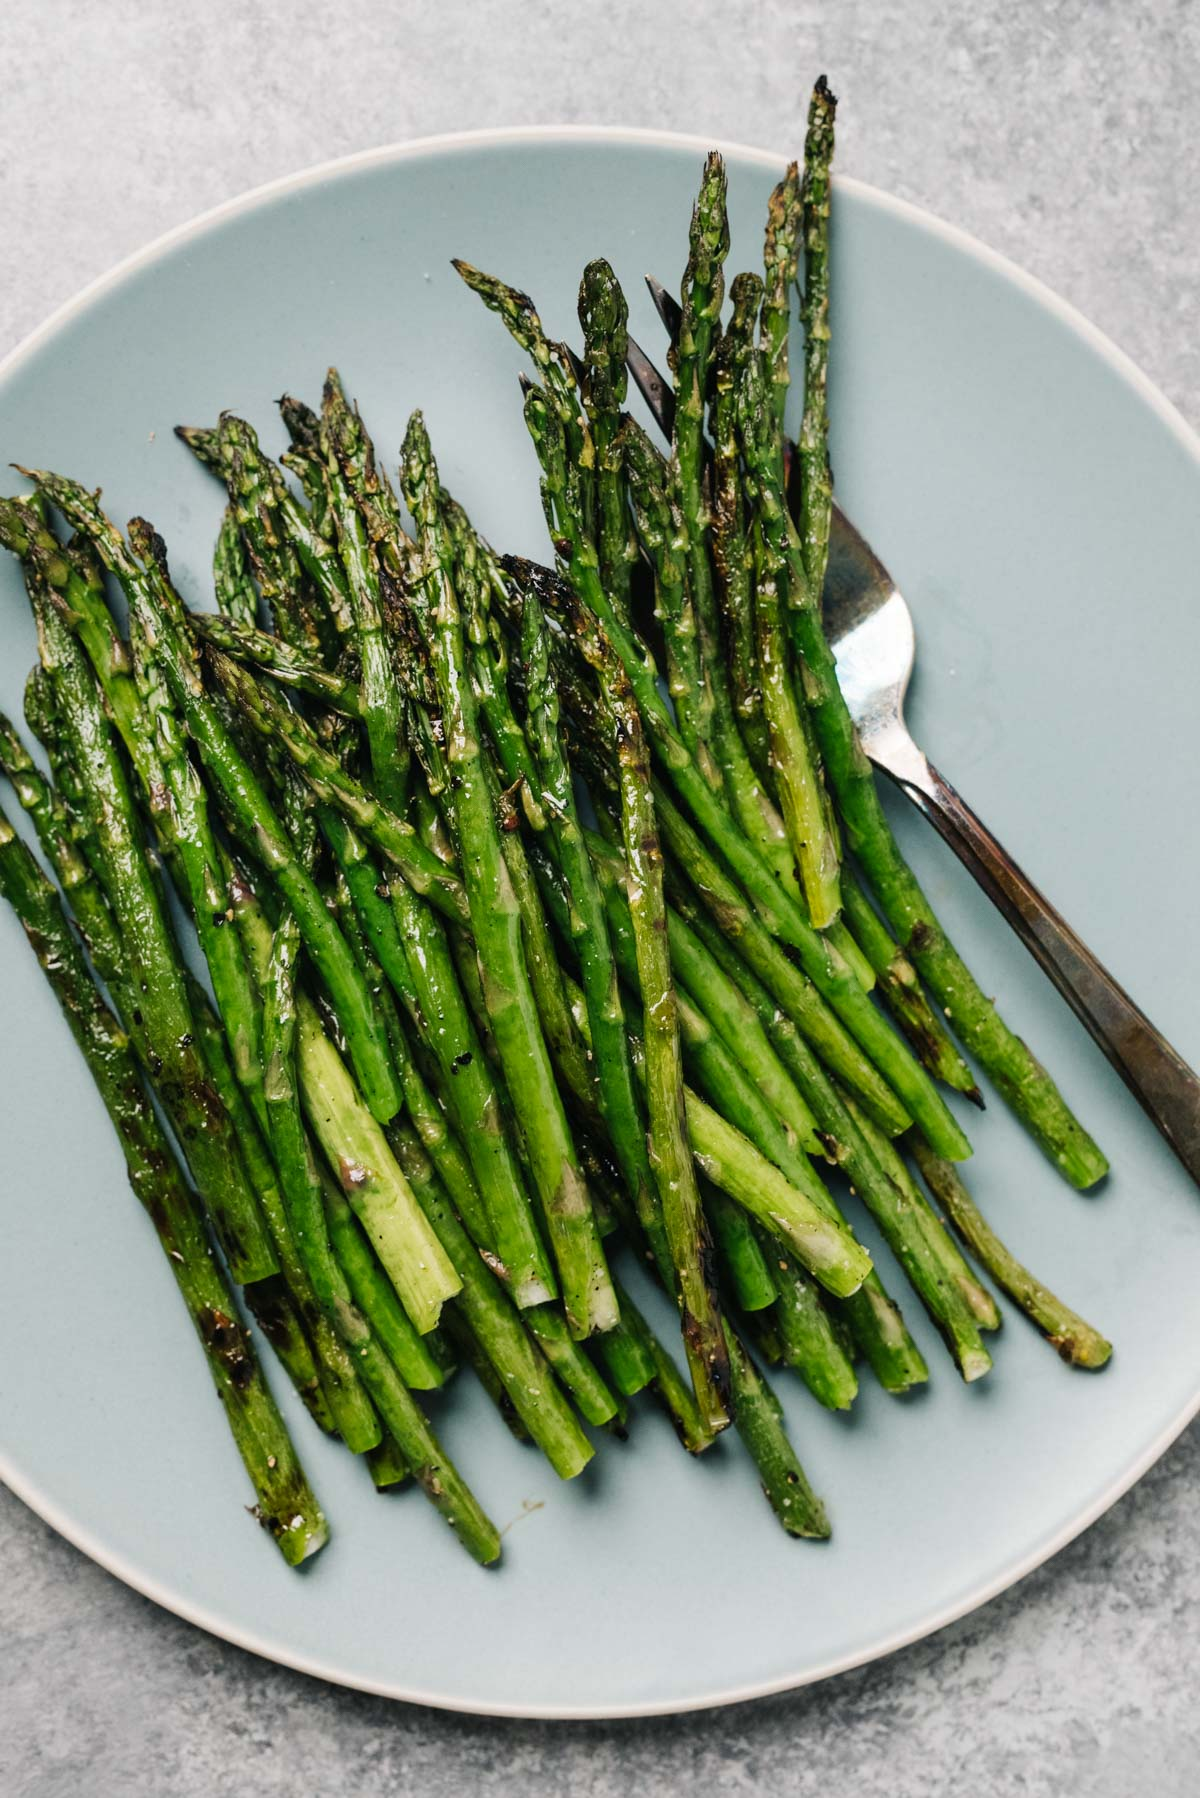 Grilled asparagus spears on a blue plate with a silver serving spoon.